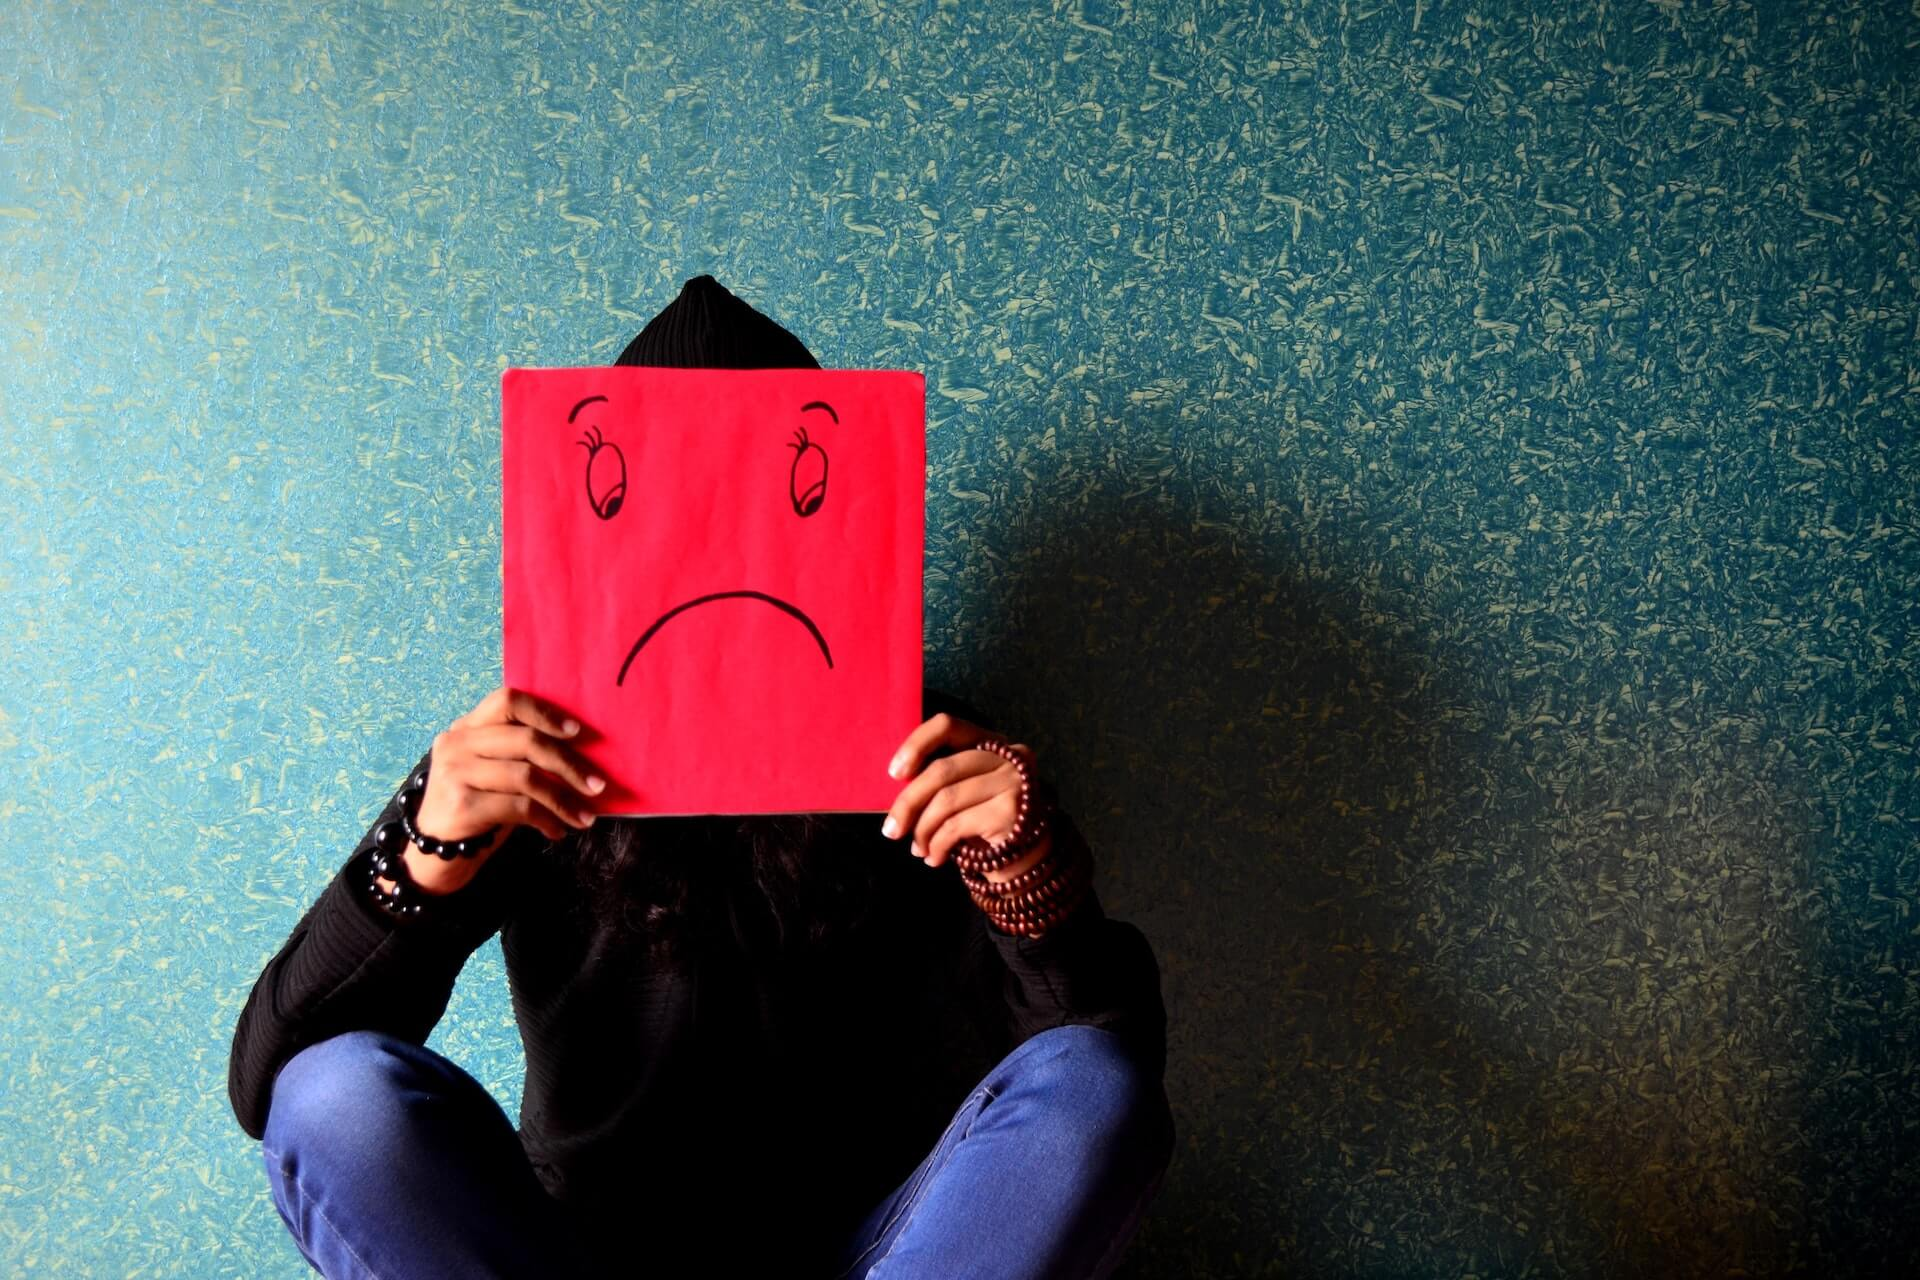 Person in a hoodie holding up a piece of red paper in front of their face with a frowny face on it